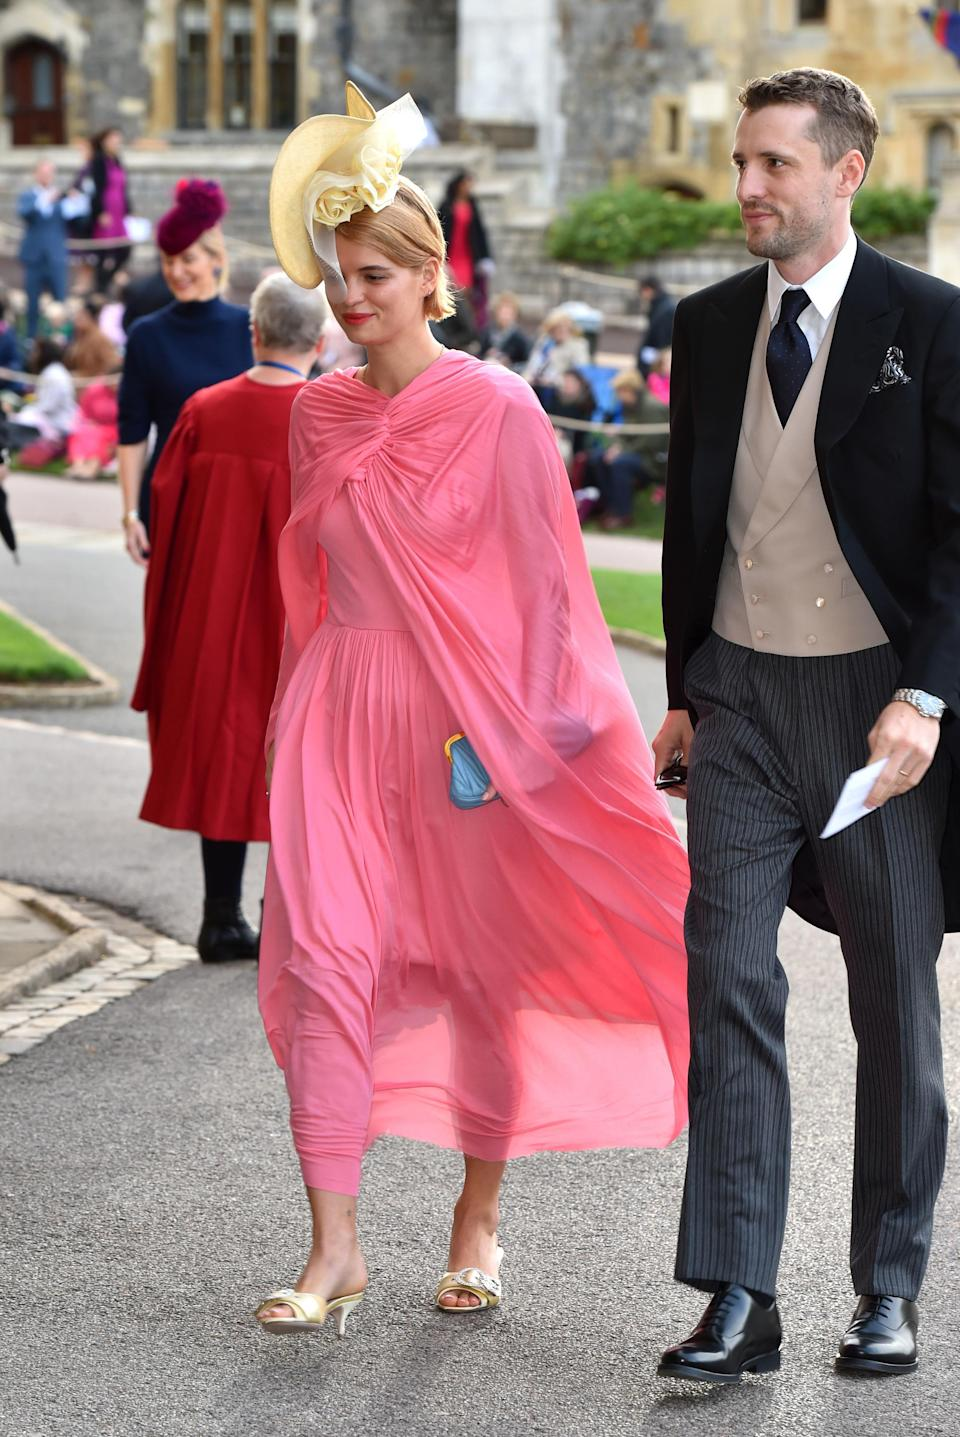 Pixie Geldof was one of the first celebrities to arrive. (Photo: Getty Images)